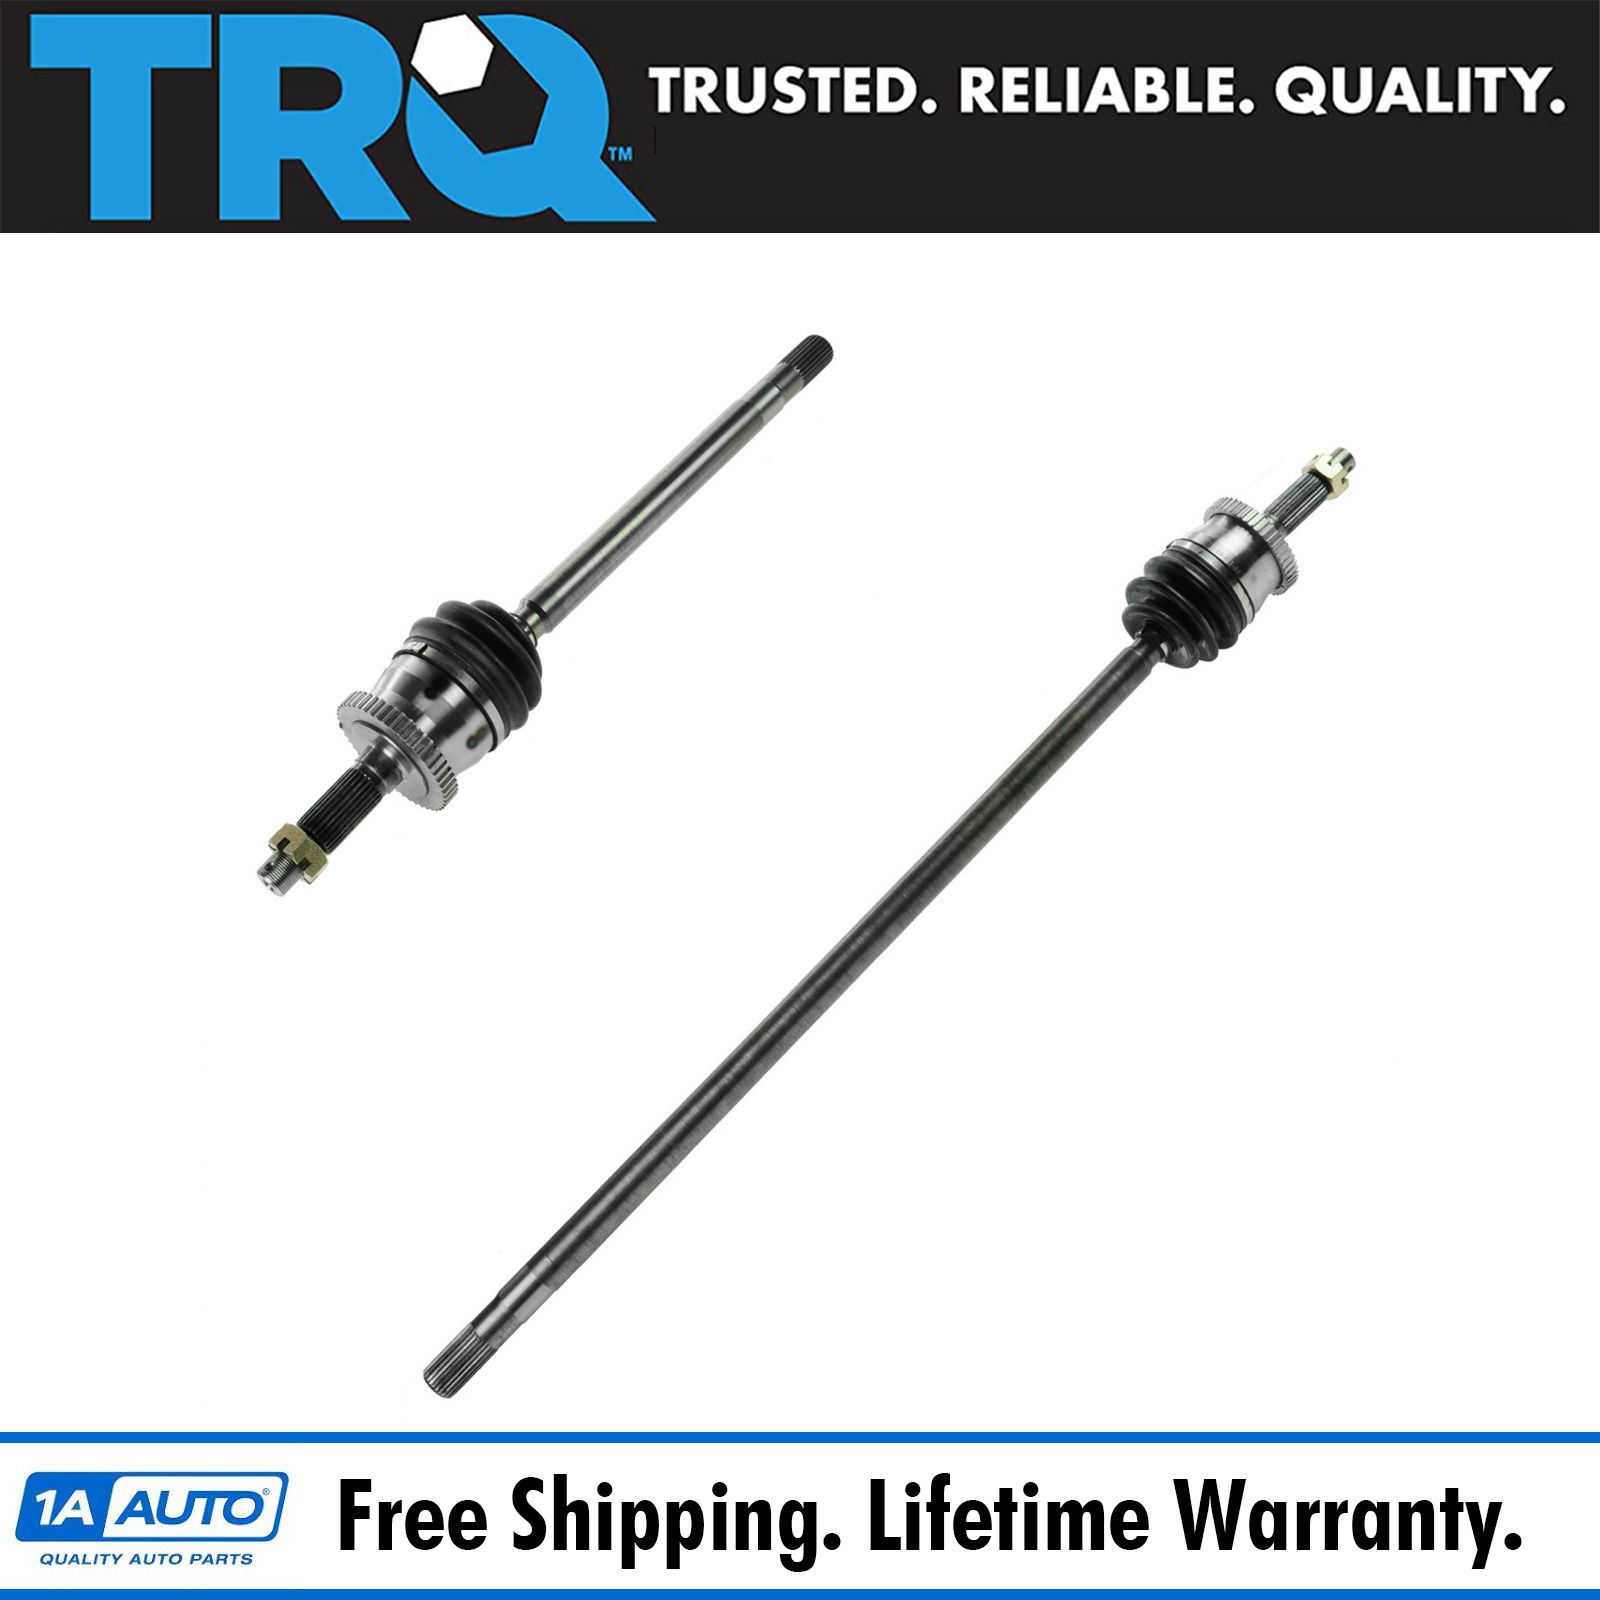 Jeep Grand Cherokee Front Axle Diagram furthermore Hood Lift Kit 11252 50 also Stone Guard Set Stainless Steel 11102 01 together with Jeep Cherokee Front Suspension Diagram likewise 2013 06 01 archive. on jeep tj seat parts html